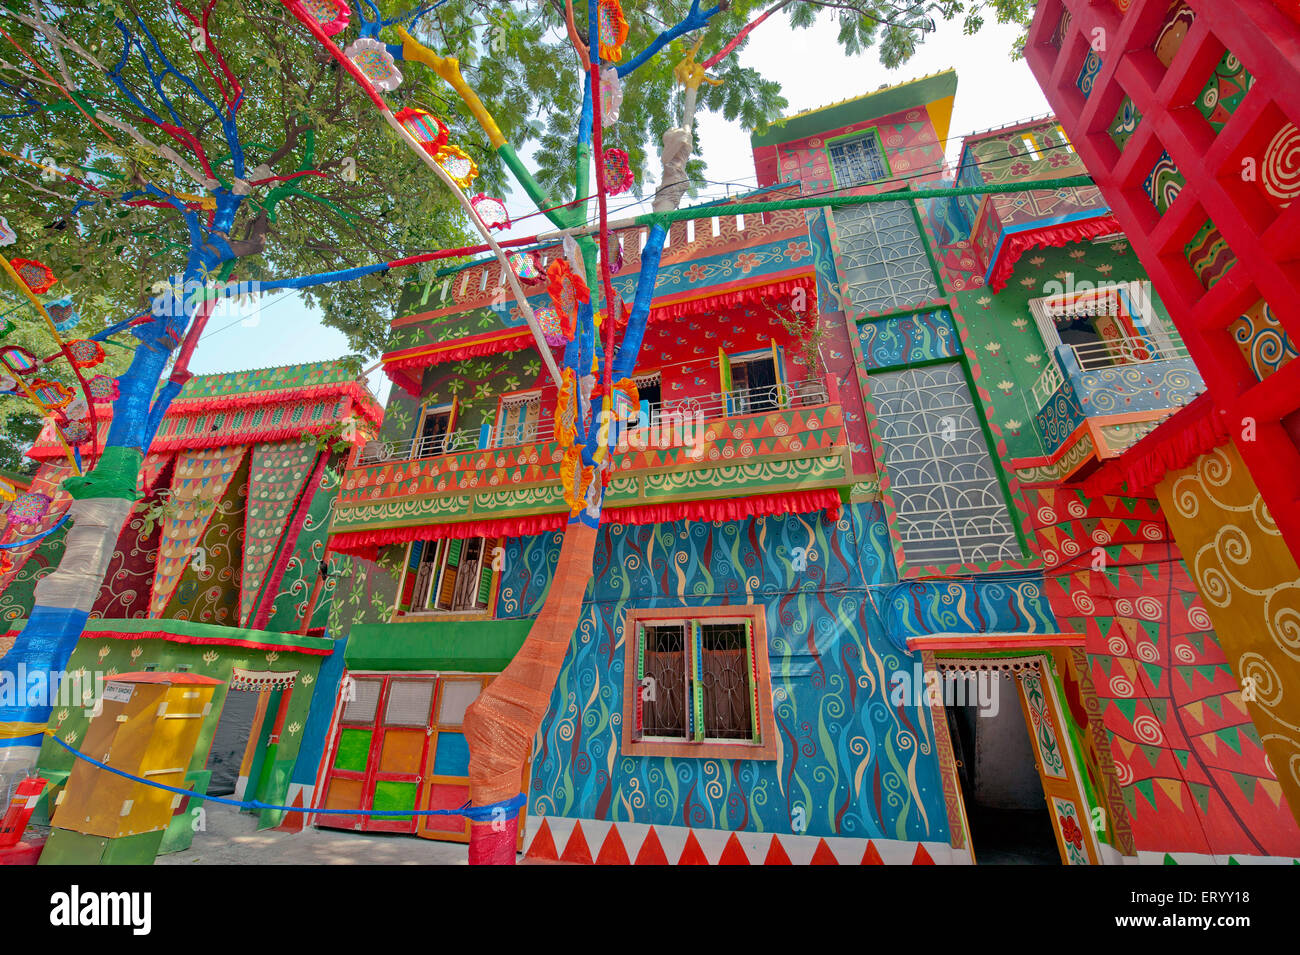 Durga puja decoration kolkata calcutta stock photos durga puja houses near durga puja pandal at kolkata calcutta india stock image altavistaventures Choice Image